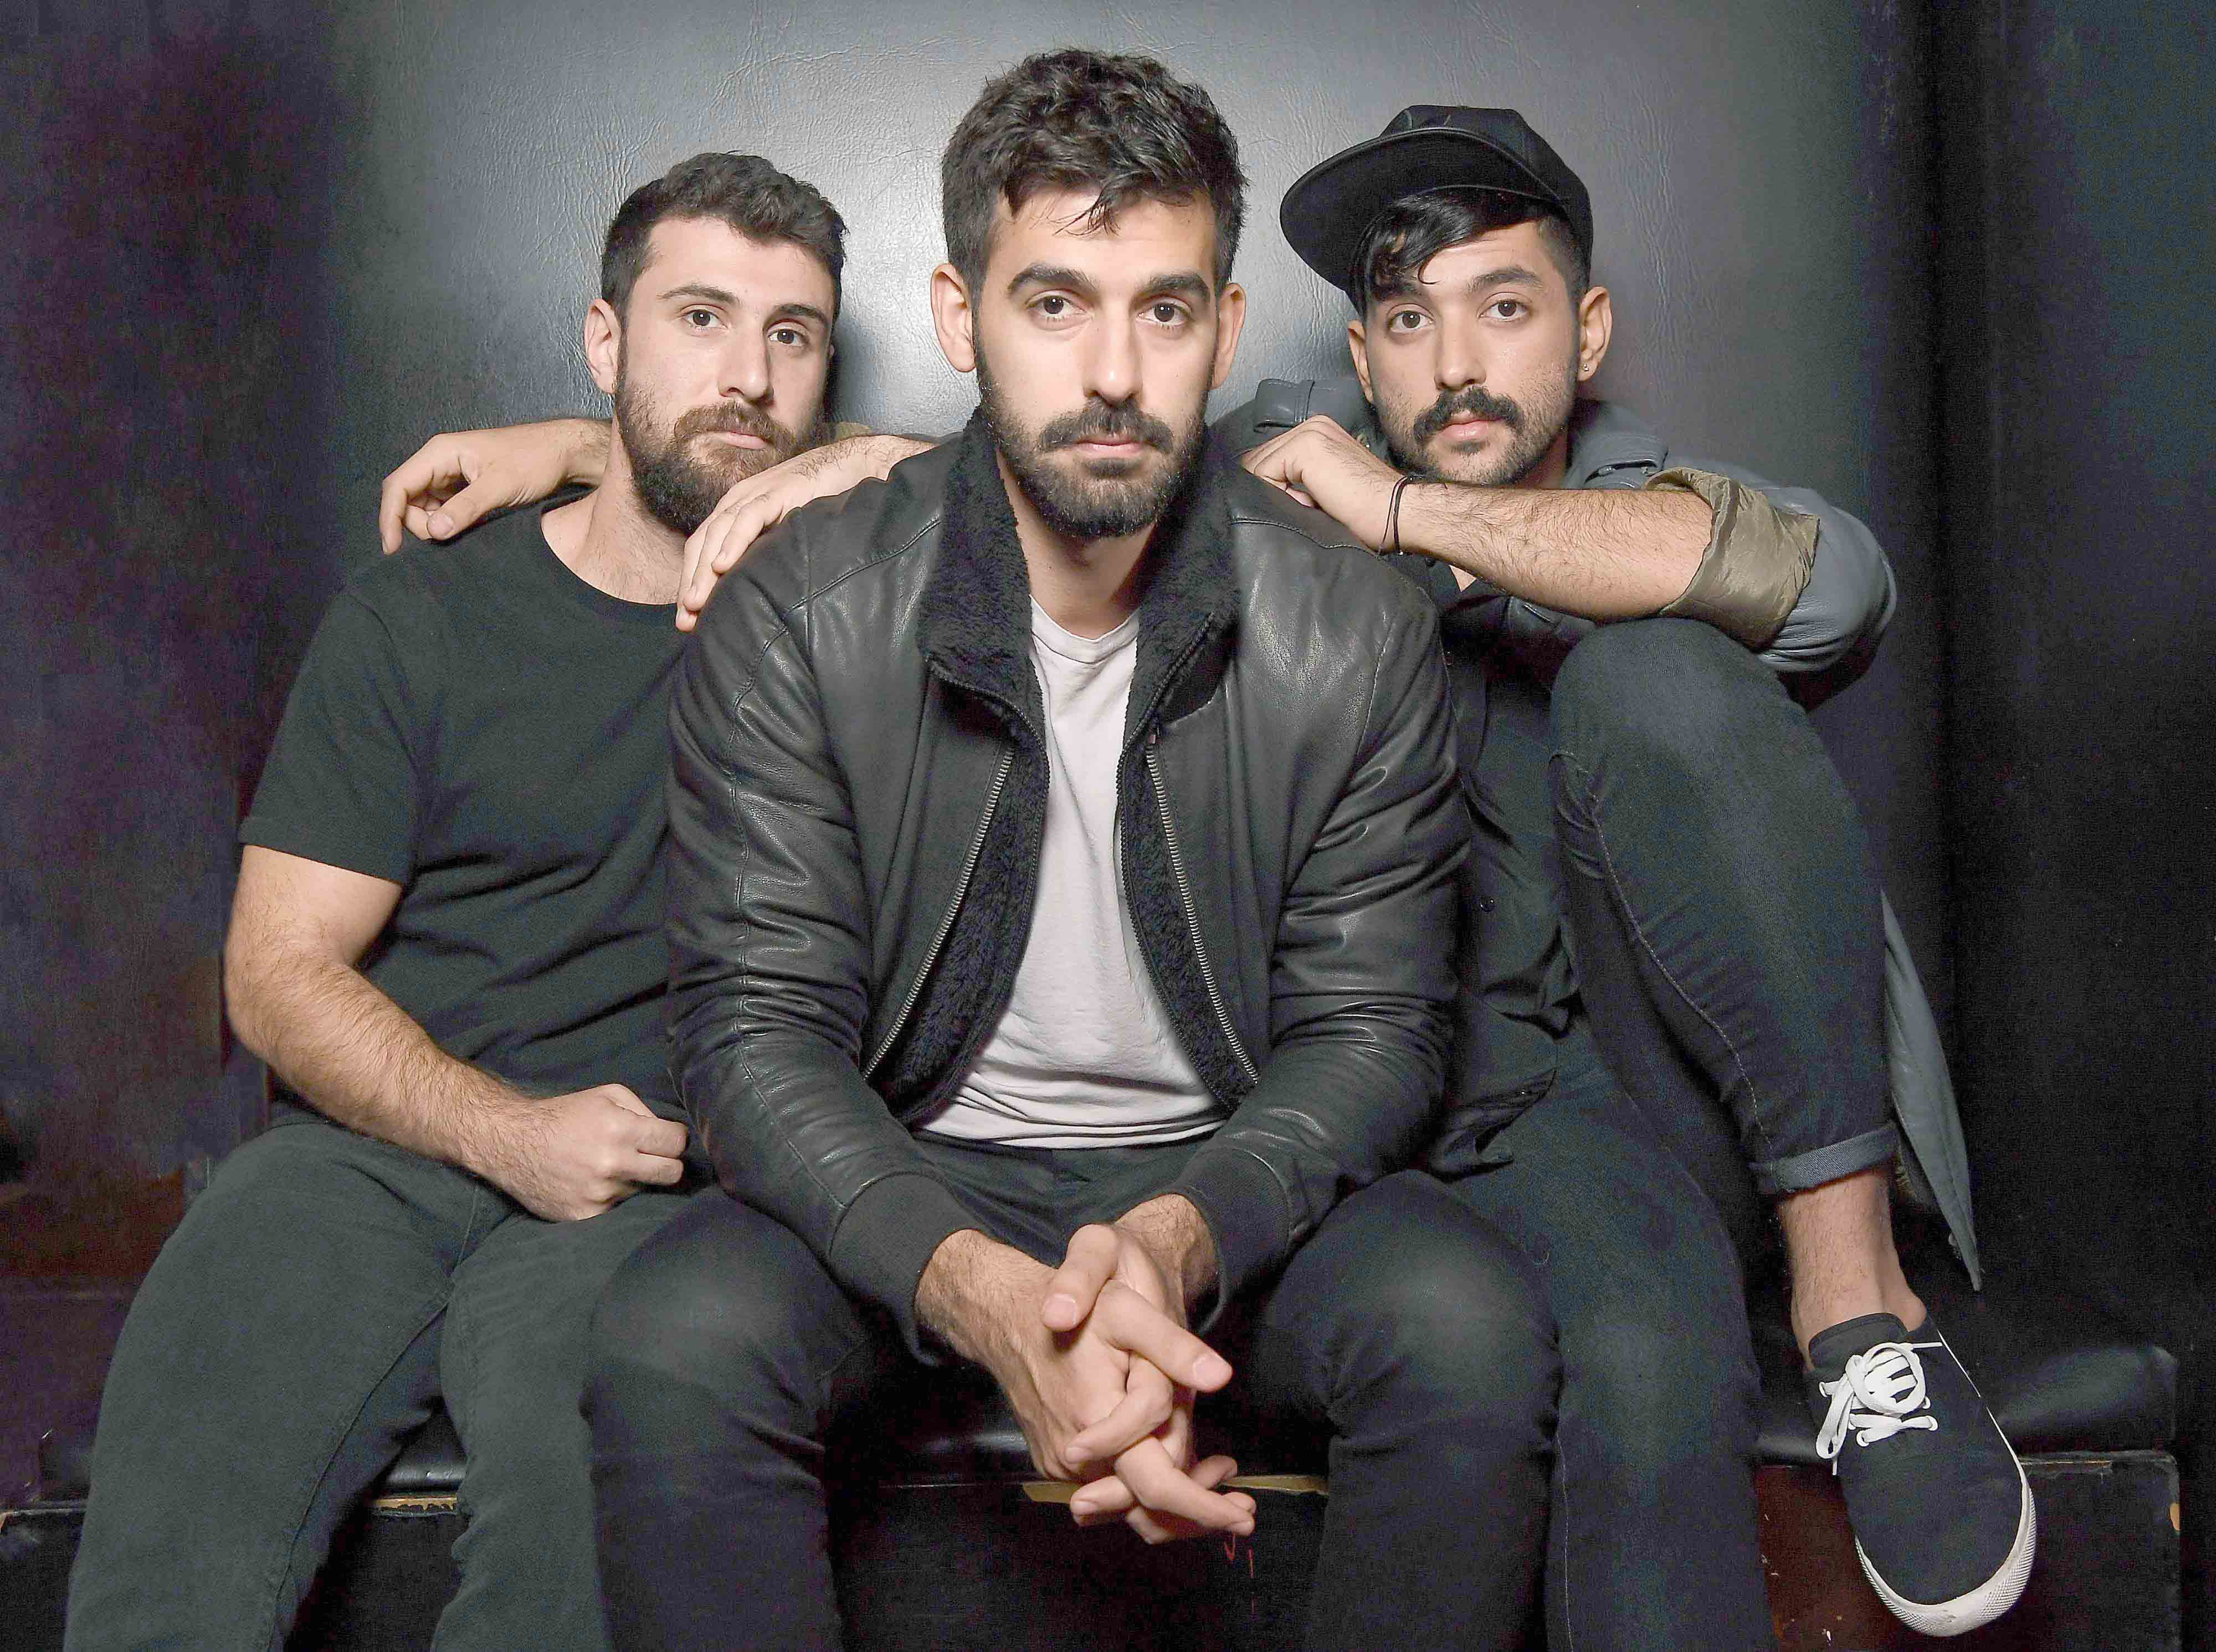 Musicians Haig Papazian (L), Carl Gerges (C) and Hamed Sinno of Mashrou' Leila pose for a picture in New York. (AFP)